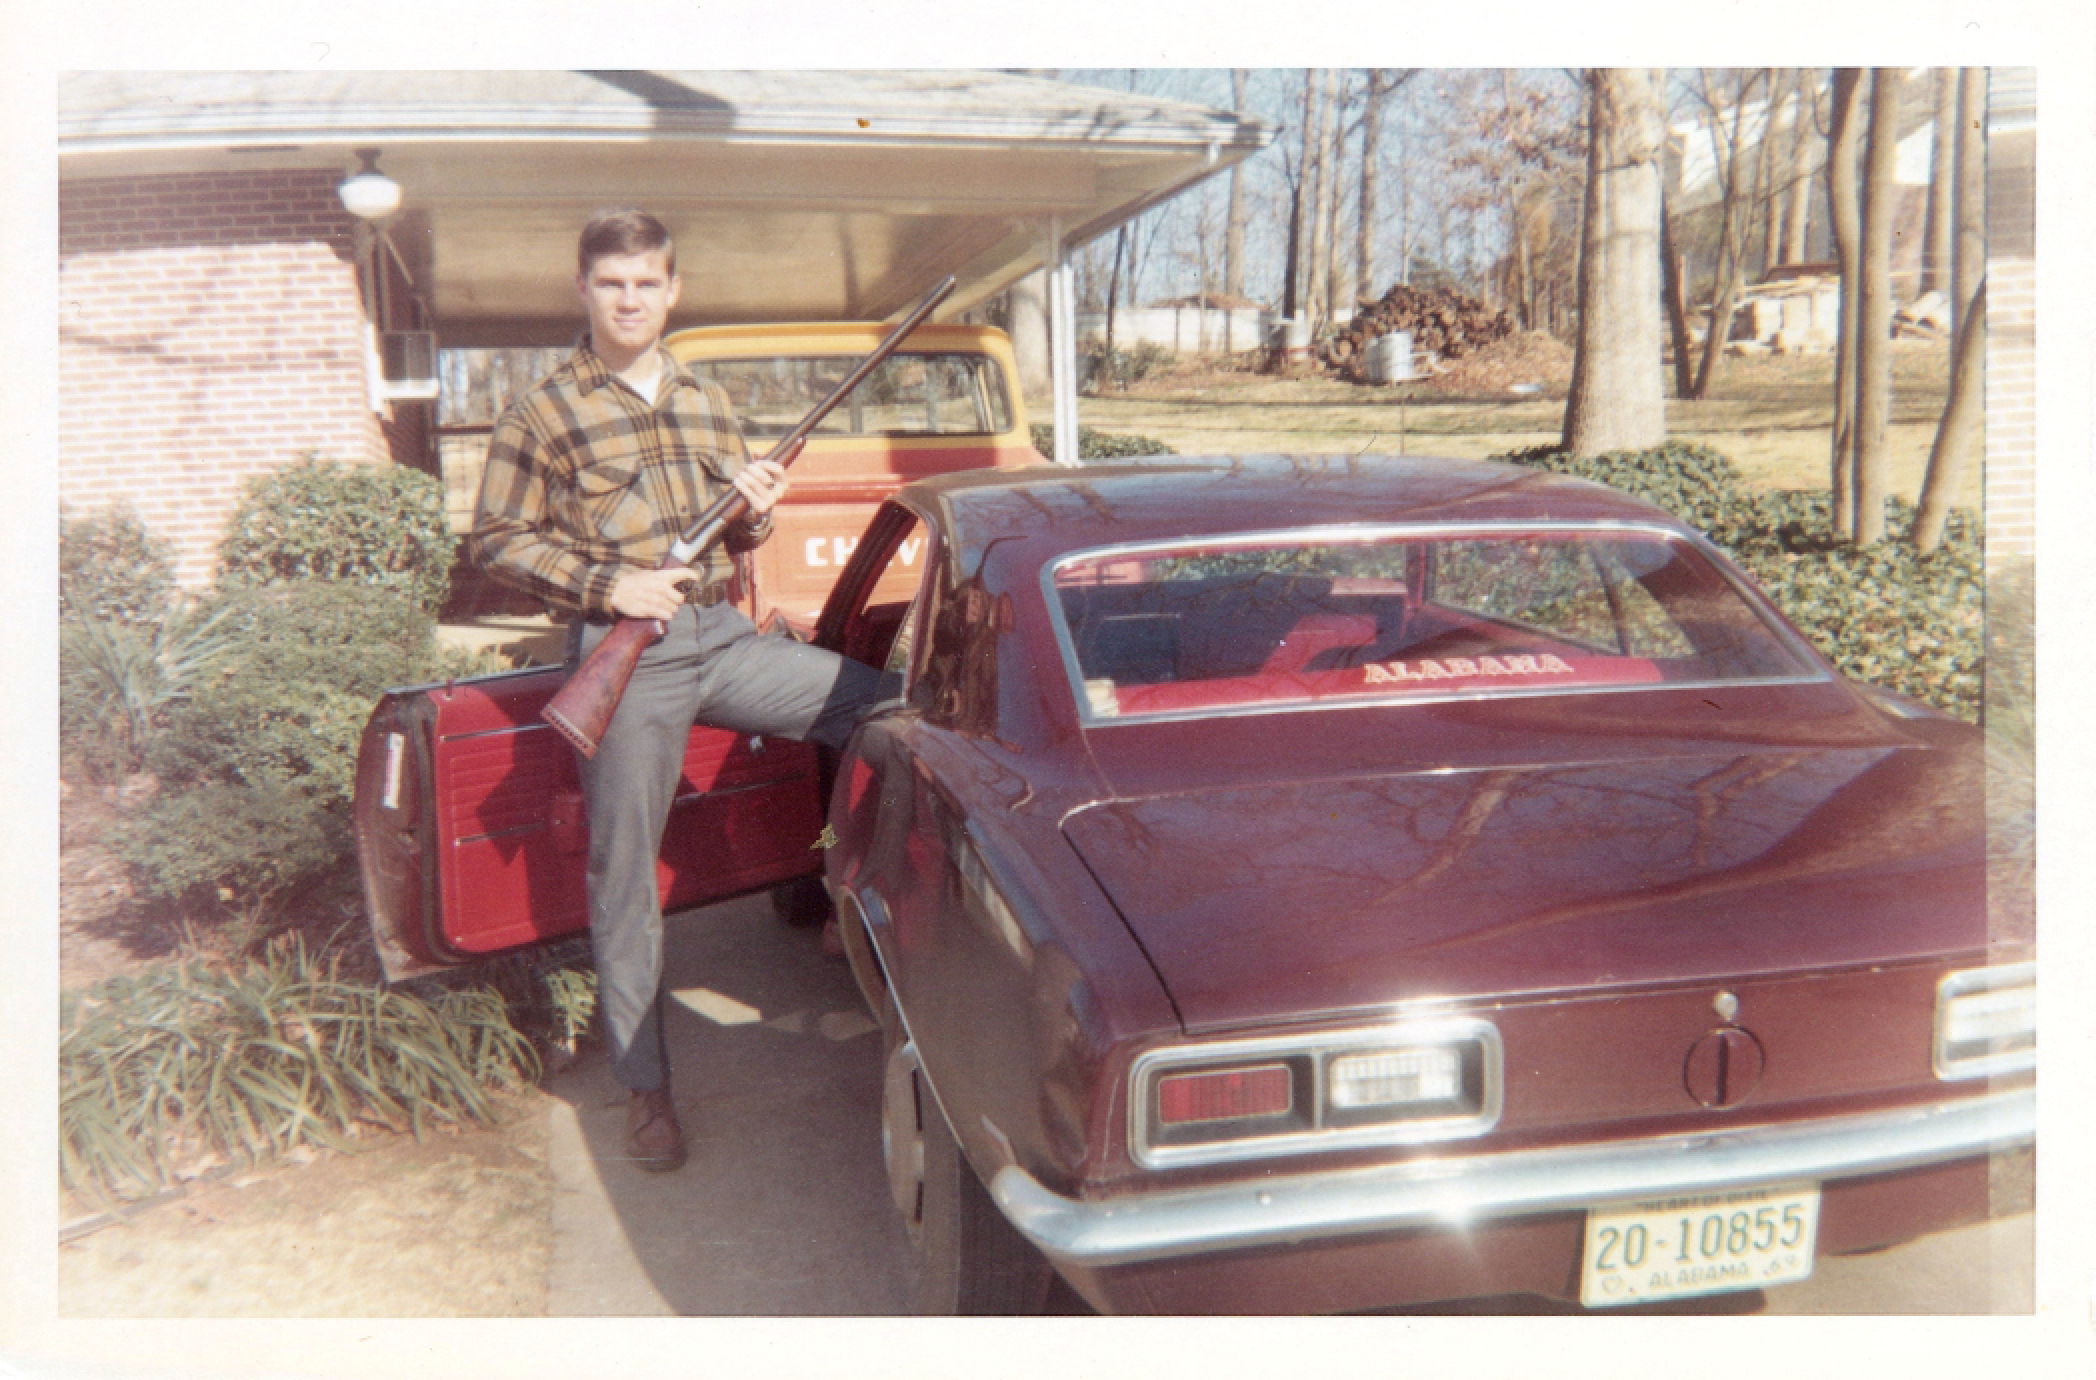 Before dad was a preacher, he had guns! And cool cars! And red vinyl interiors! And amazing shirts that I would totally wear now. #rolltide (c. 1974 maybe?)